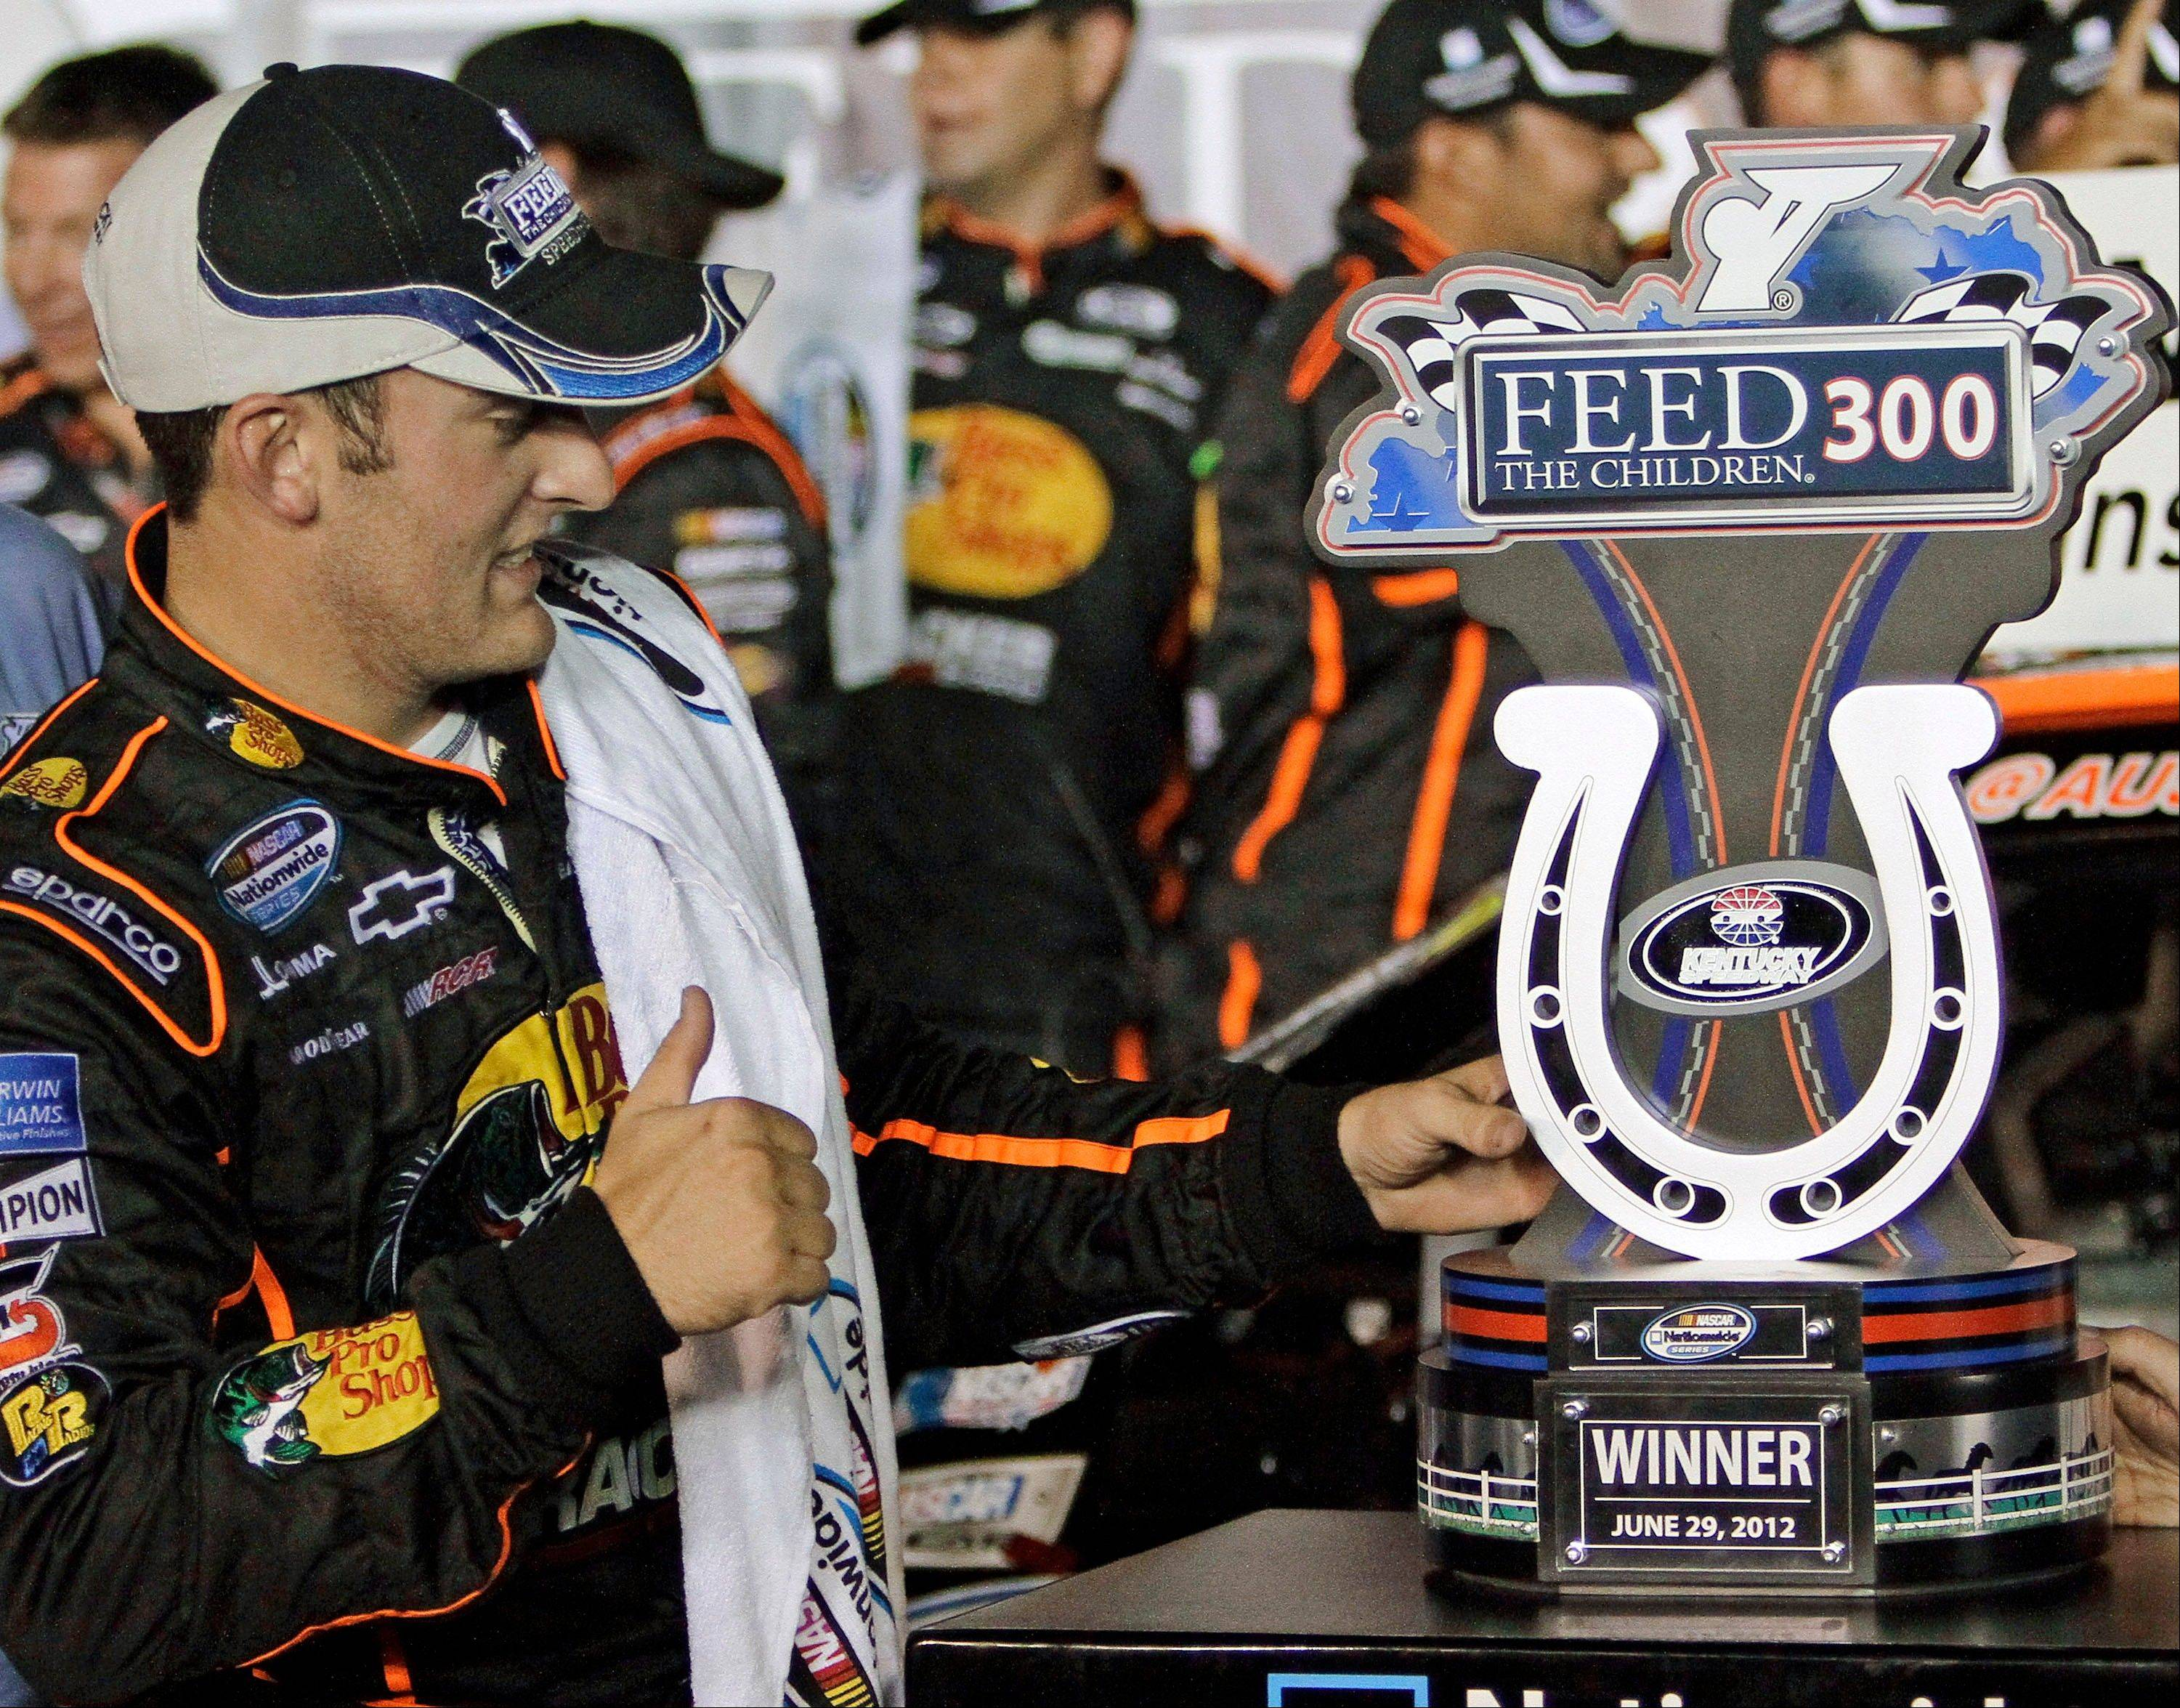 Austin Dillon gives a thumbs-up to the trophy after capturing the NASCAR Nationwide Series auto race Friday night at Kentucky Speedway in Sparta, Ky.